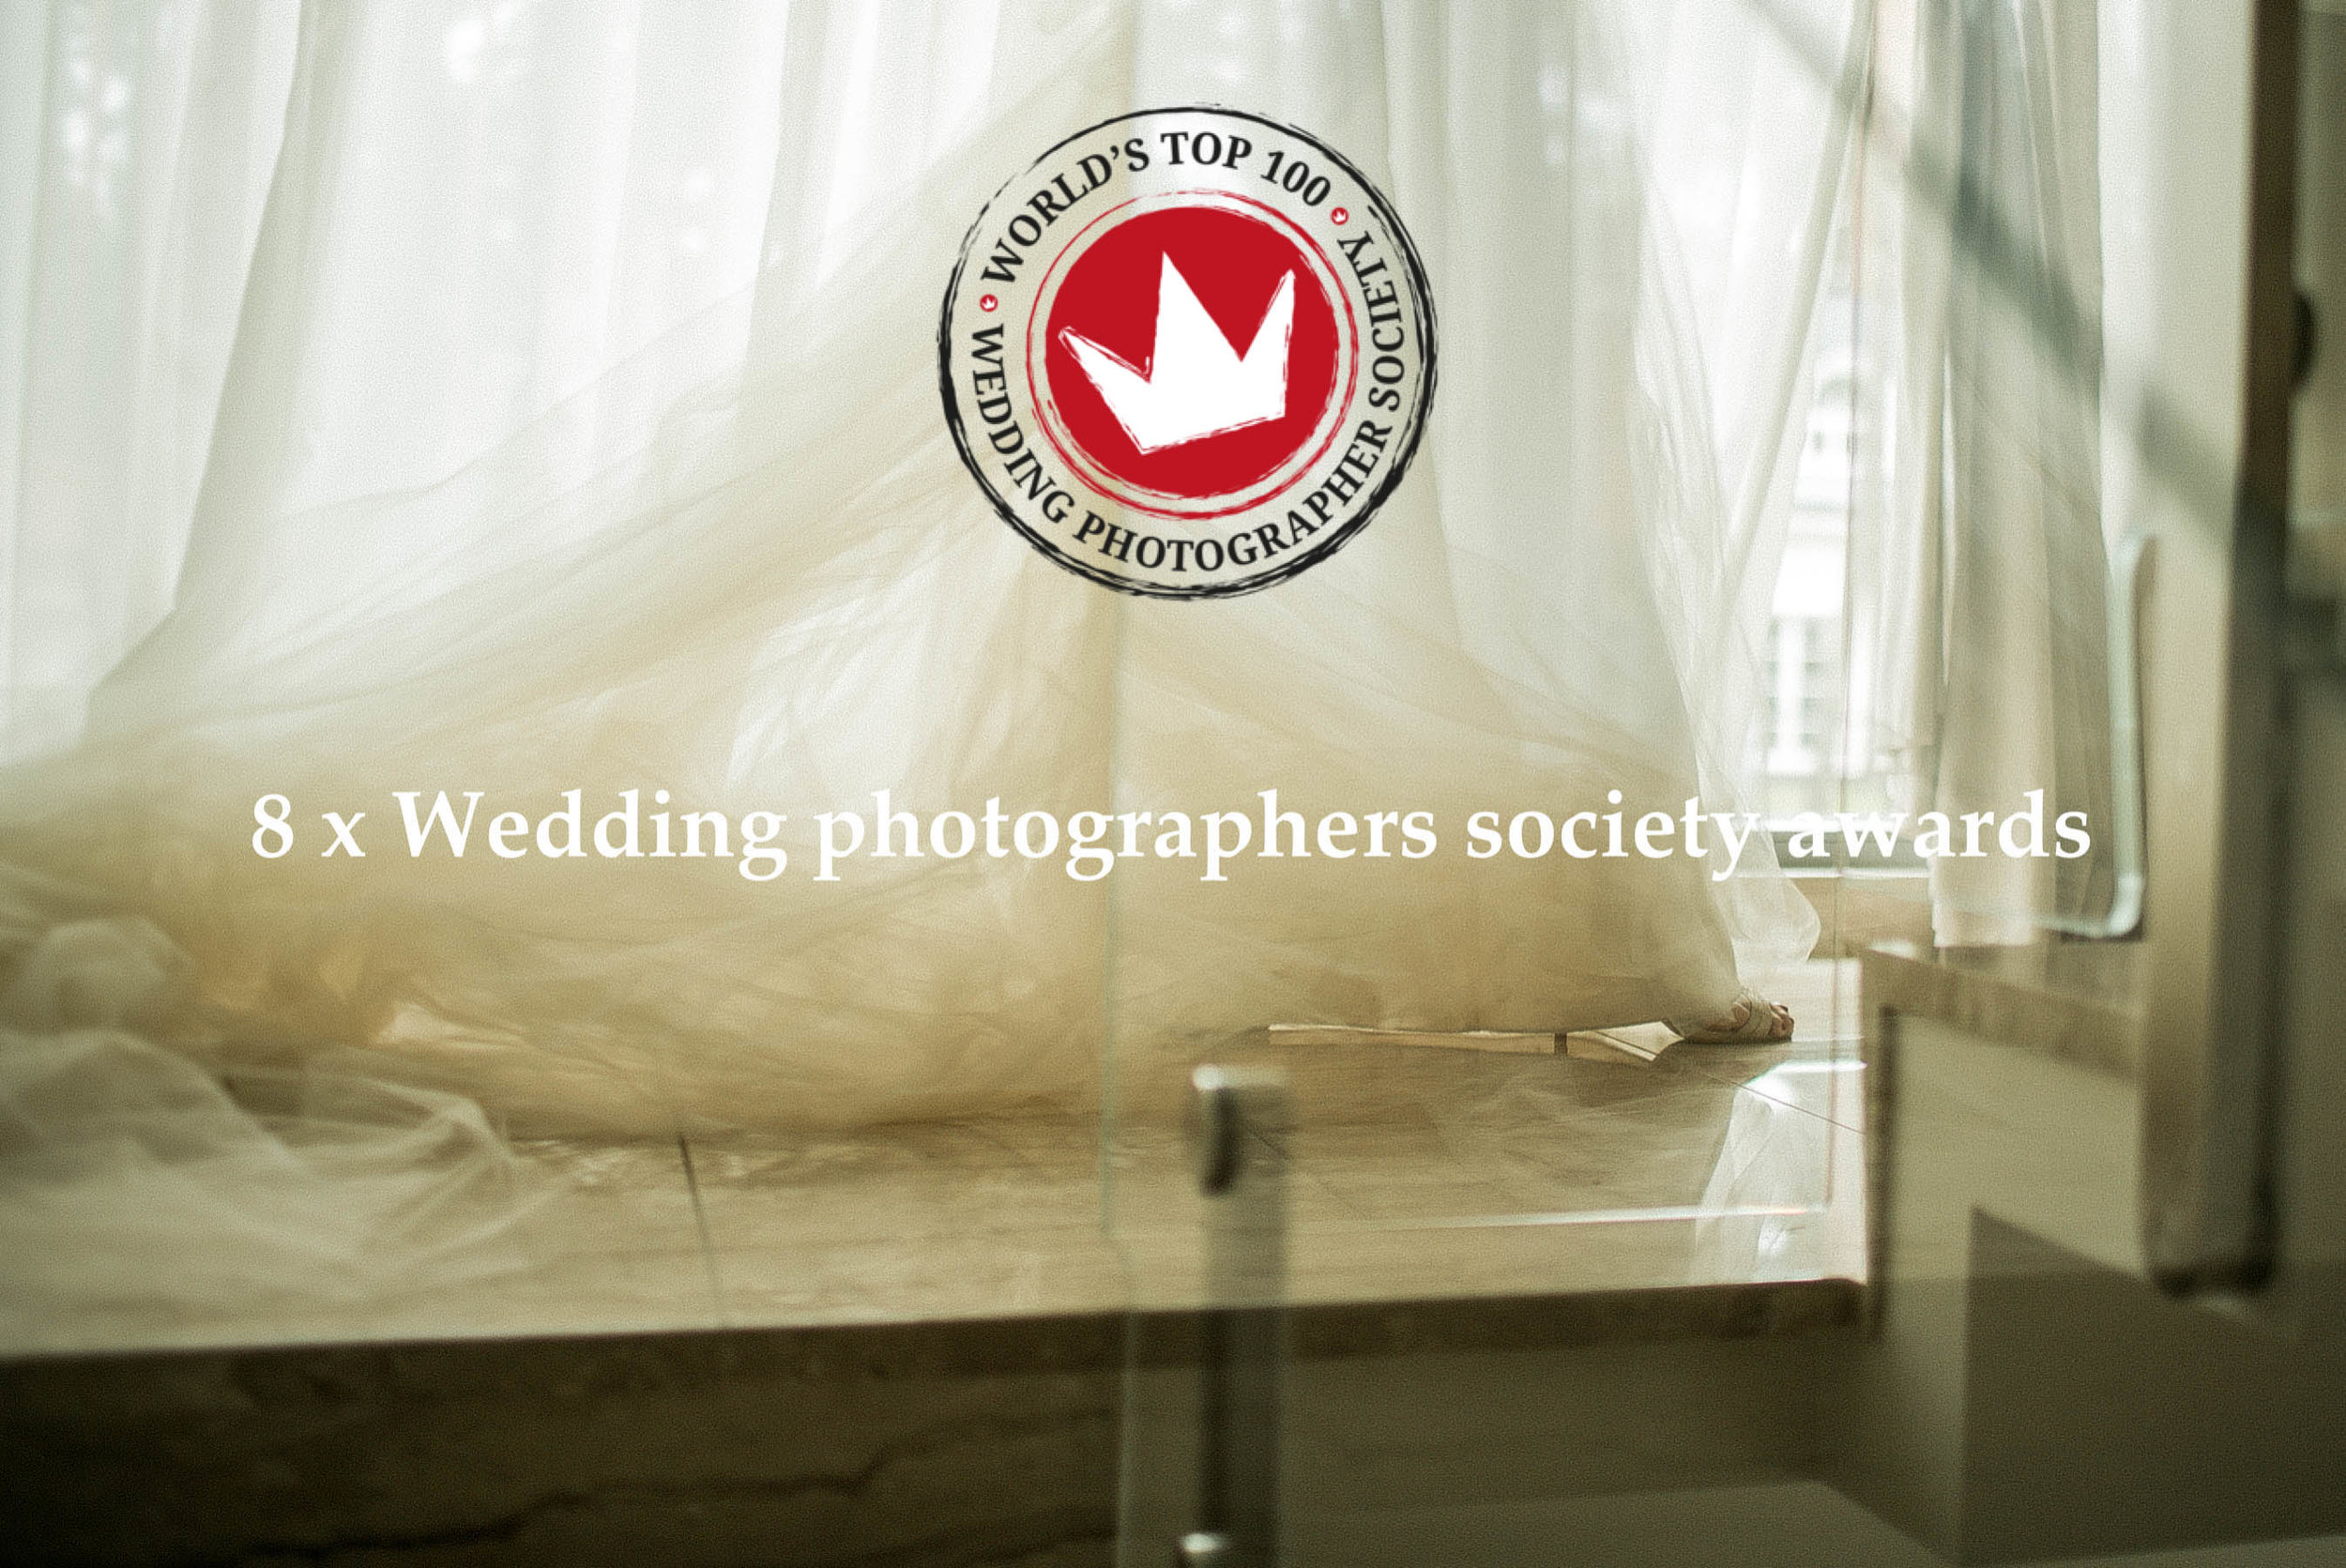 London_wedding_photographer_award_17.jpg